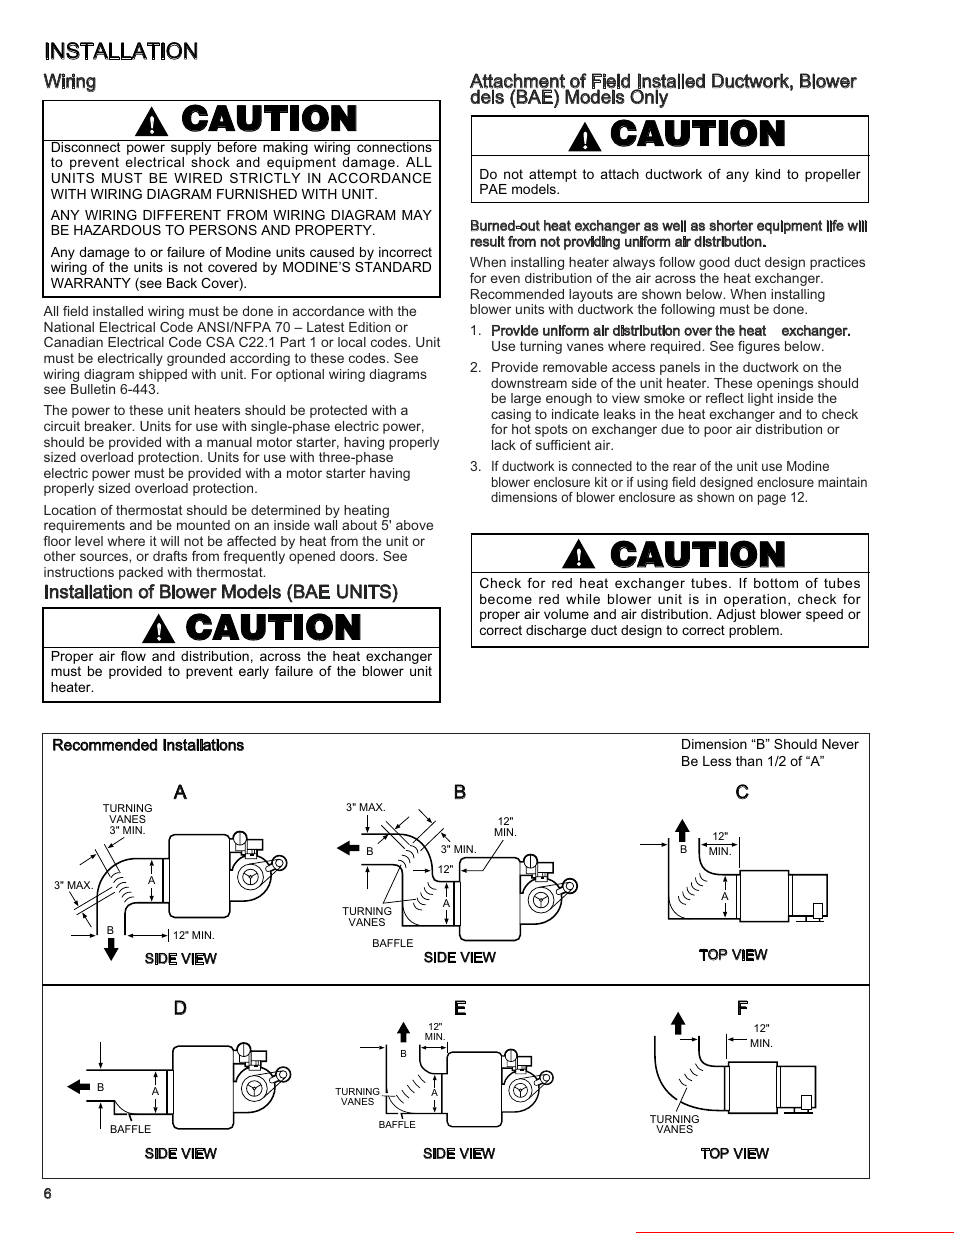 modine manufacturing bae page6?resize=665%2C861 wiring diagram modine pdp 50 wiring diagram images modine pd50 wiring diagram at mifinder.co